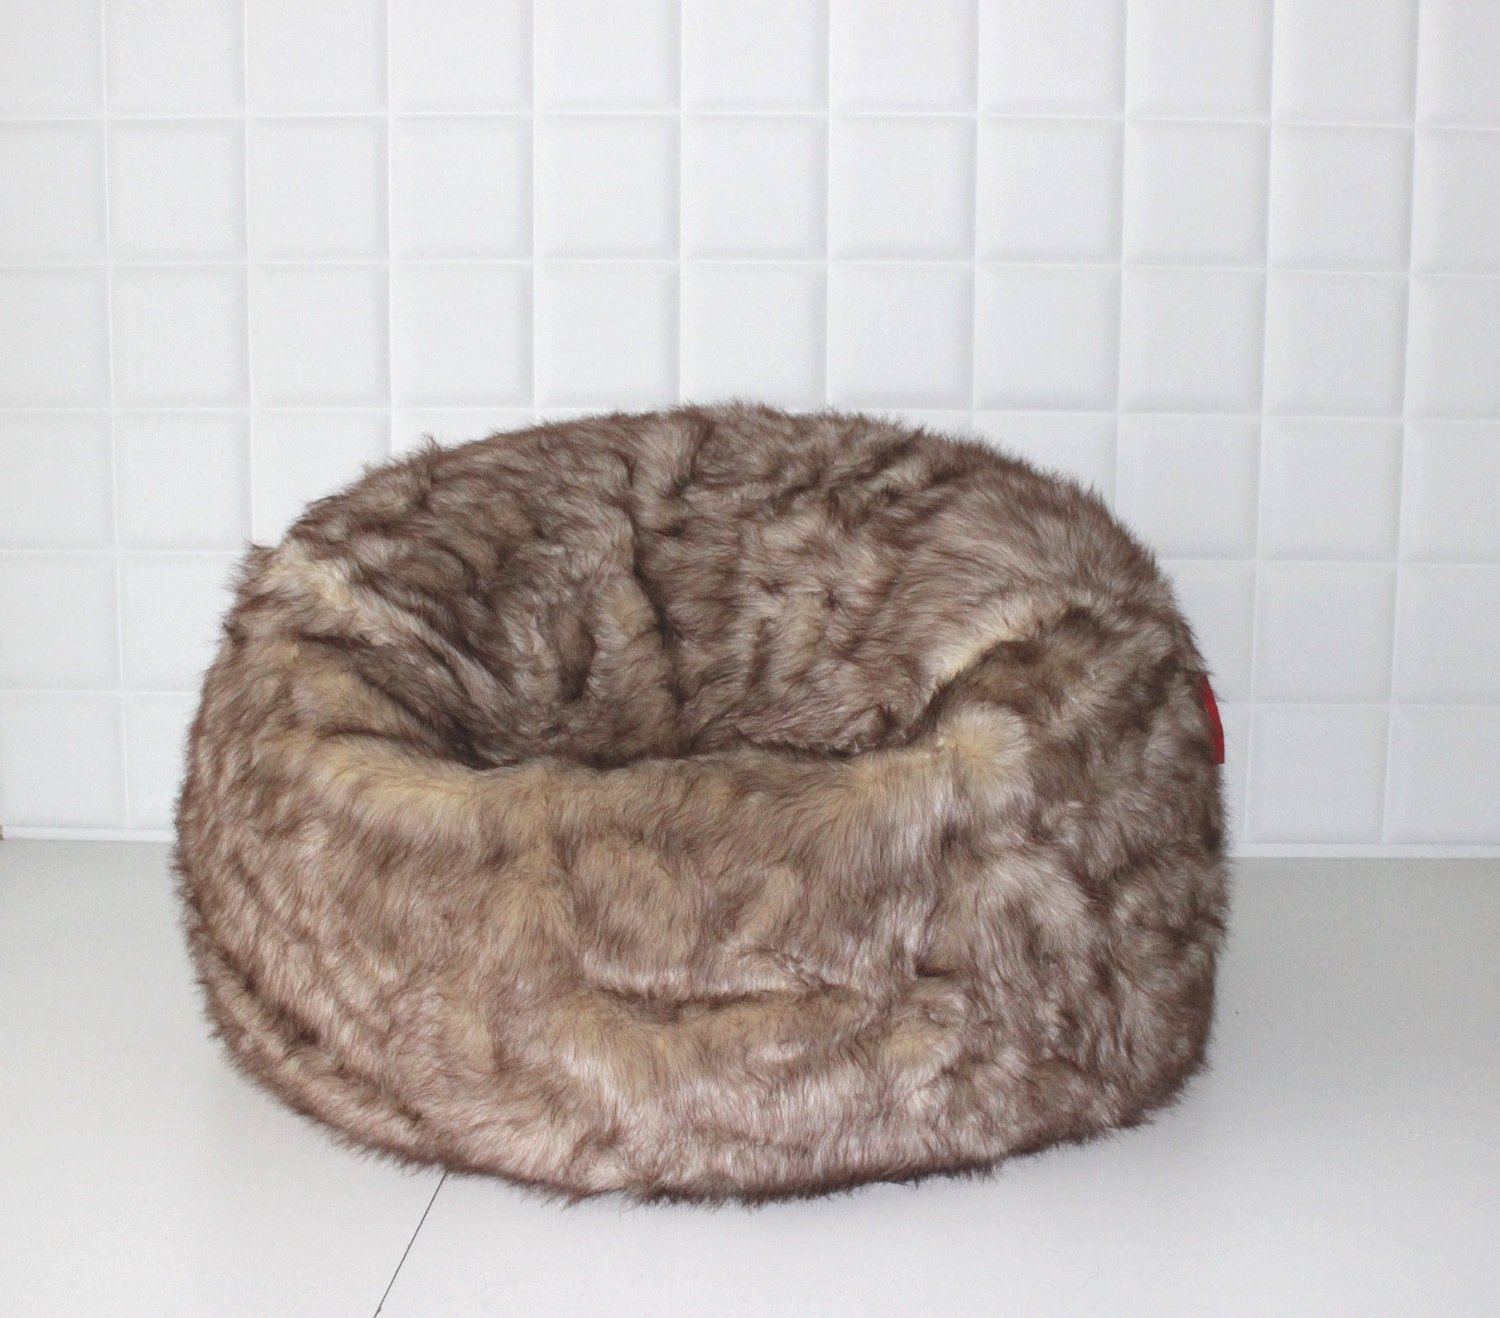 Get Quotations · EXTRA LARGE LUSH   SOFT TUNDRA WOLF FAUX FUR BEAN BAG  CLOUD BEAN BAG CHAIRS COVER 44123a76b1f07